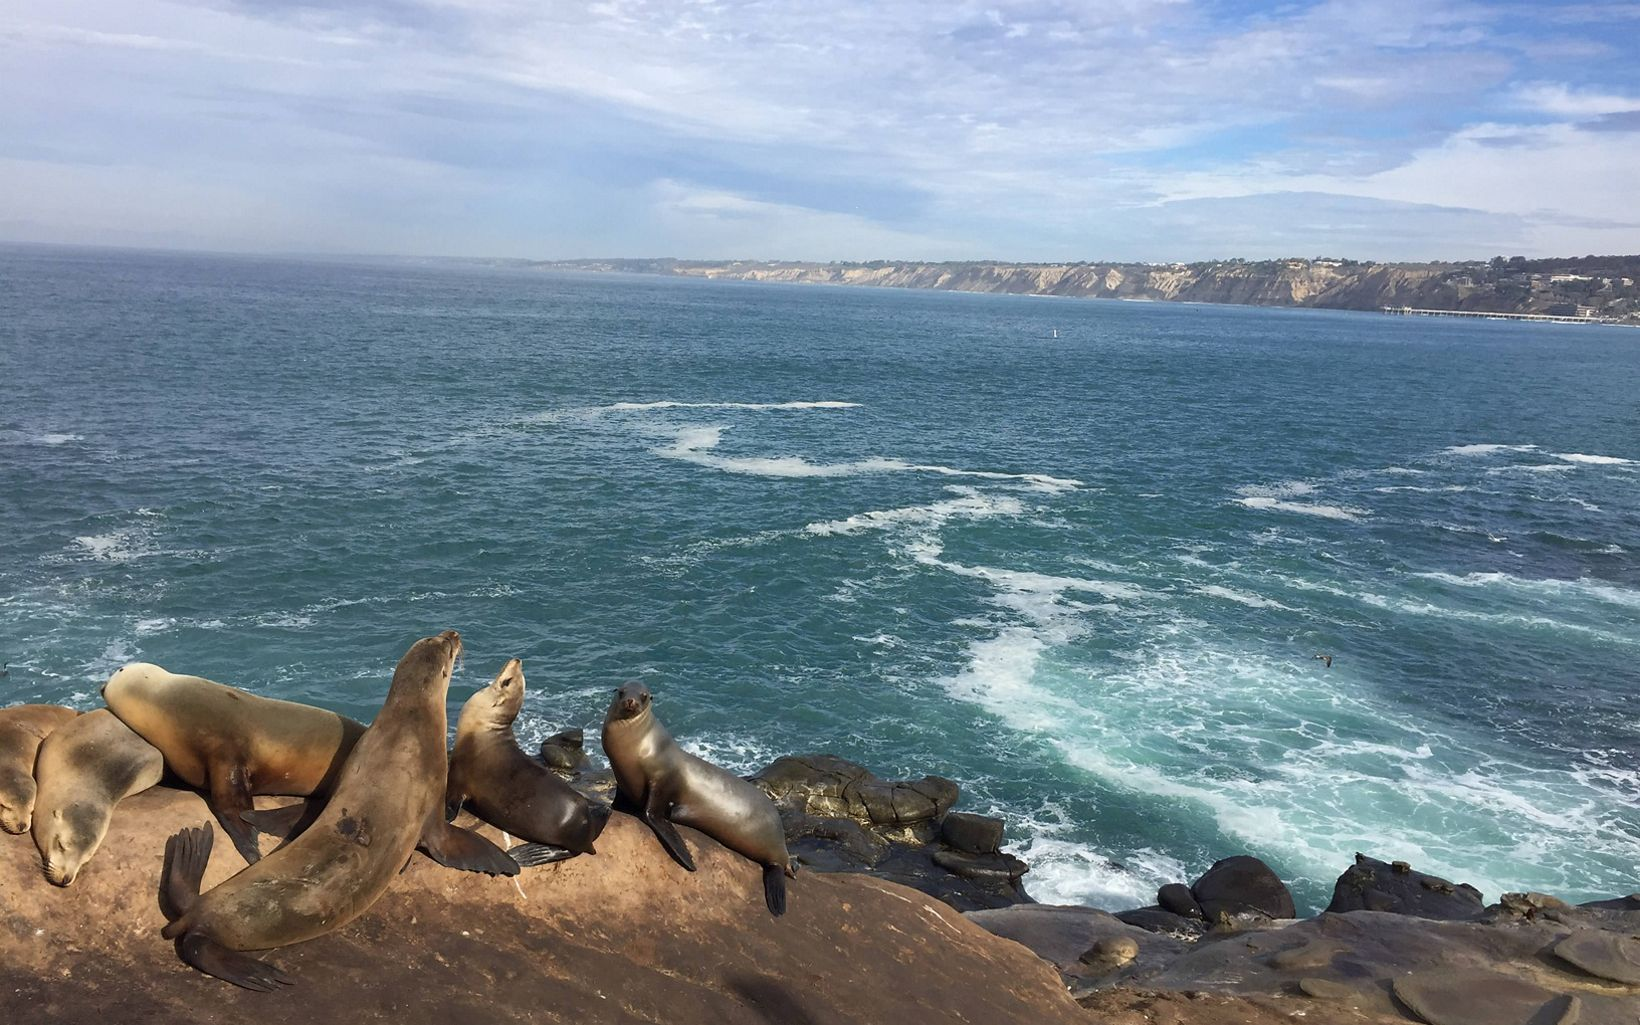 Seals sunbathe on rocks in Southern California